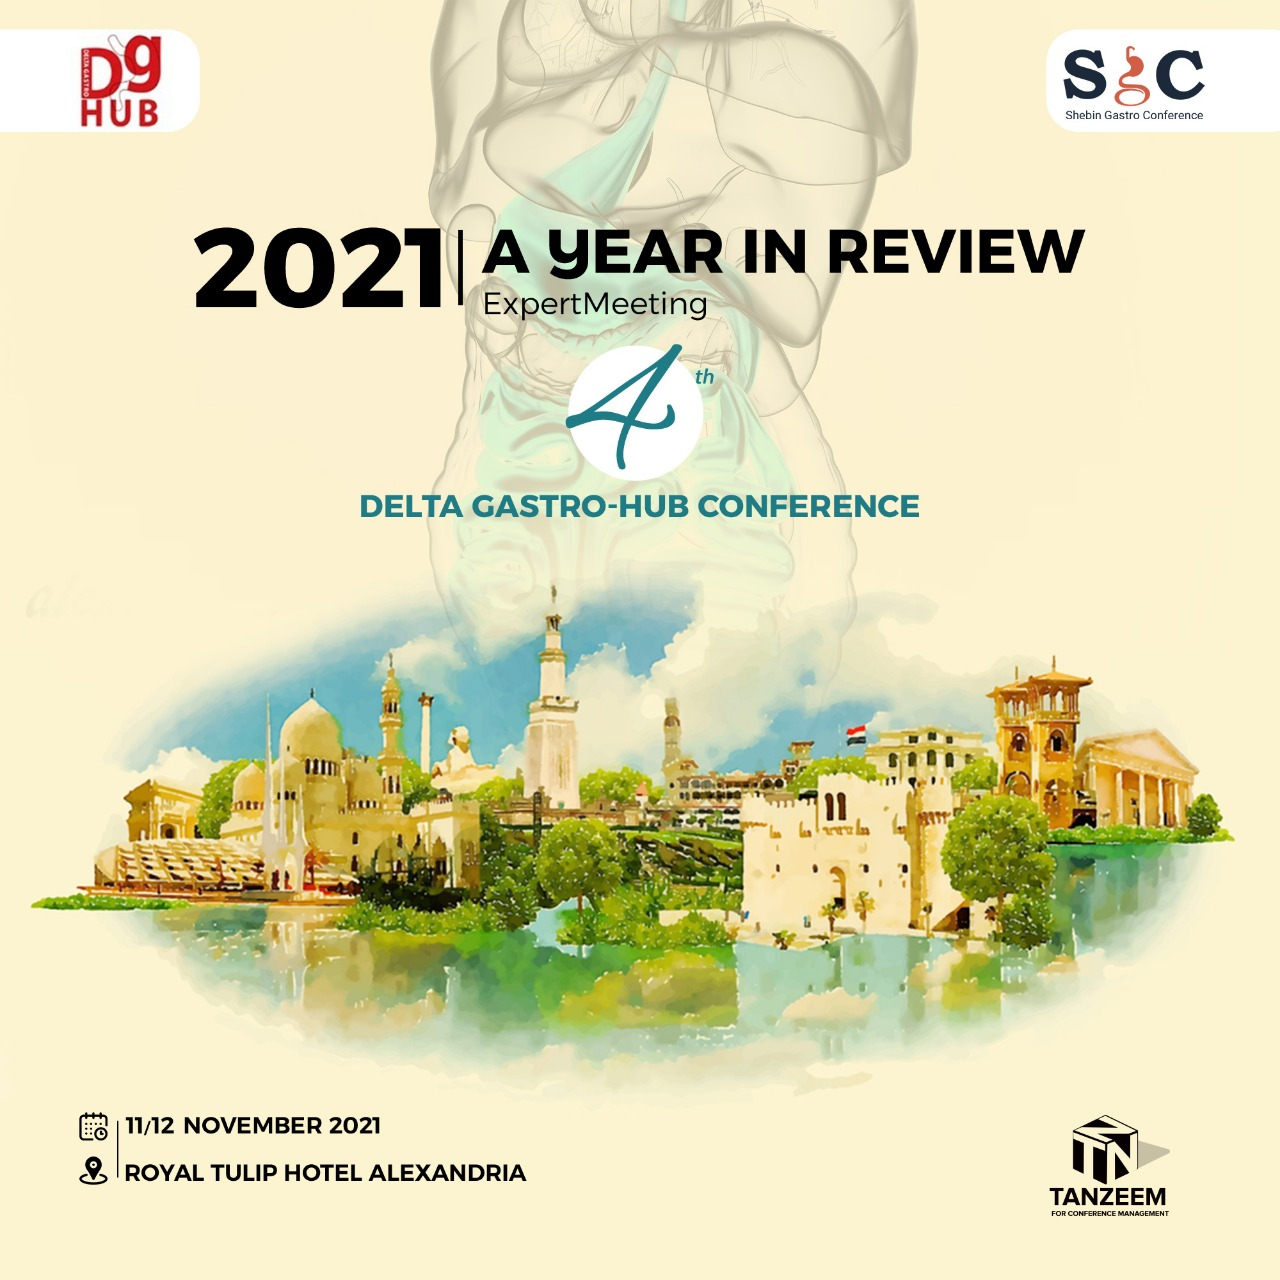 2021 A Year in Review Expert Meeting (4th Delta Gastro-Hub Conference)